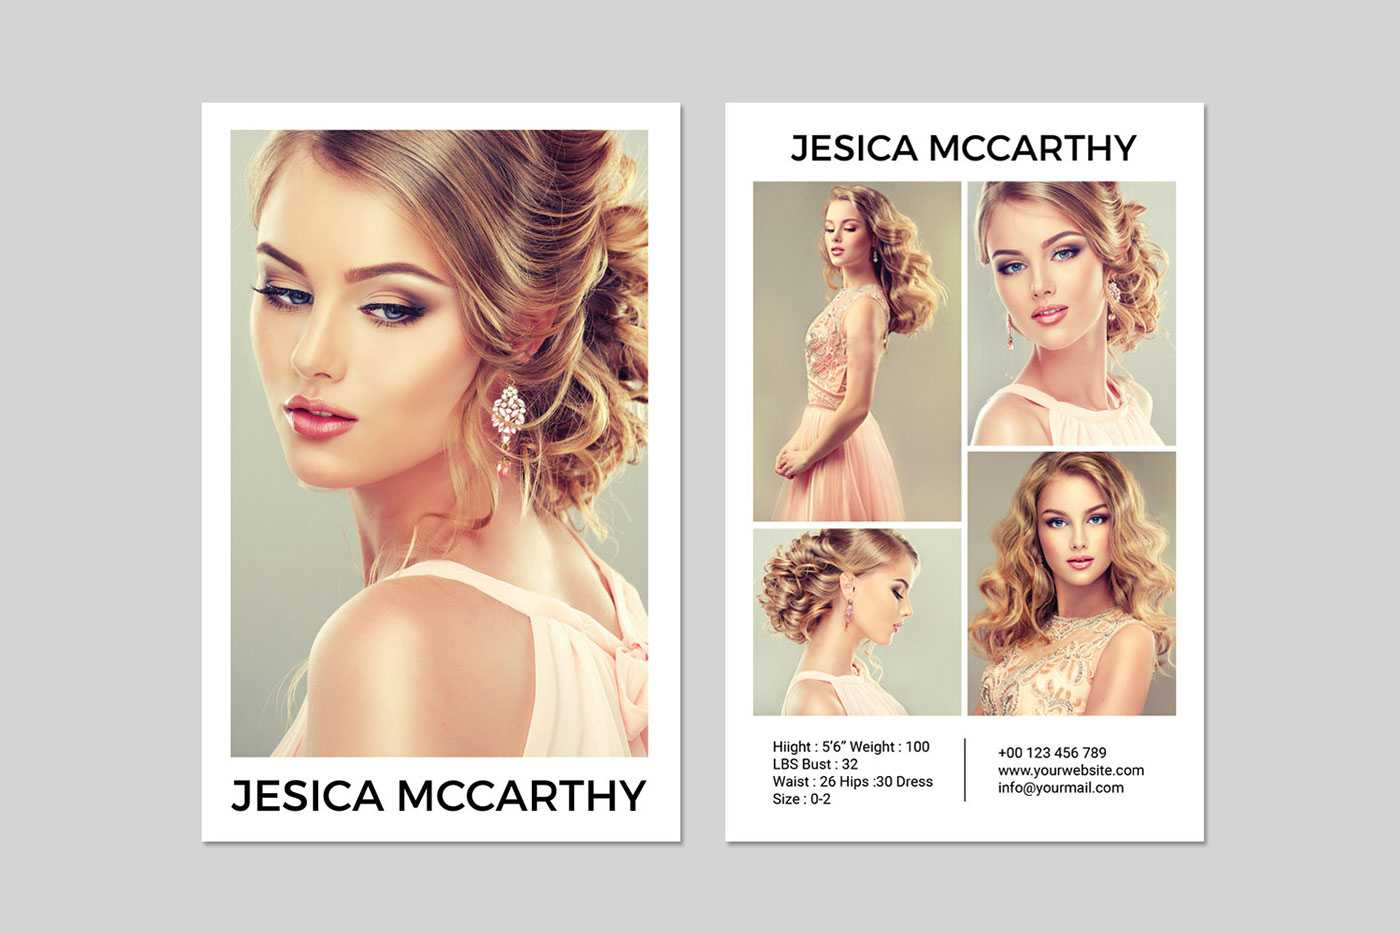 031 Model Comp Card Template Outstanding Ideas Psd Free Intended For Download Comp Card Template